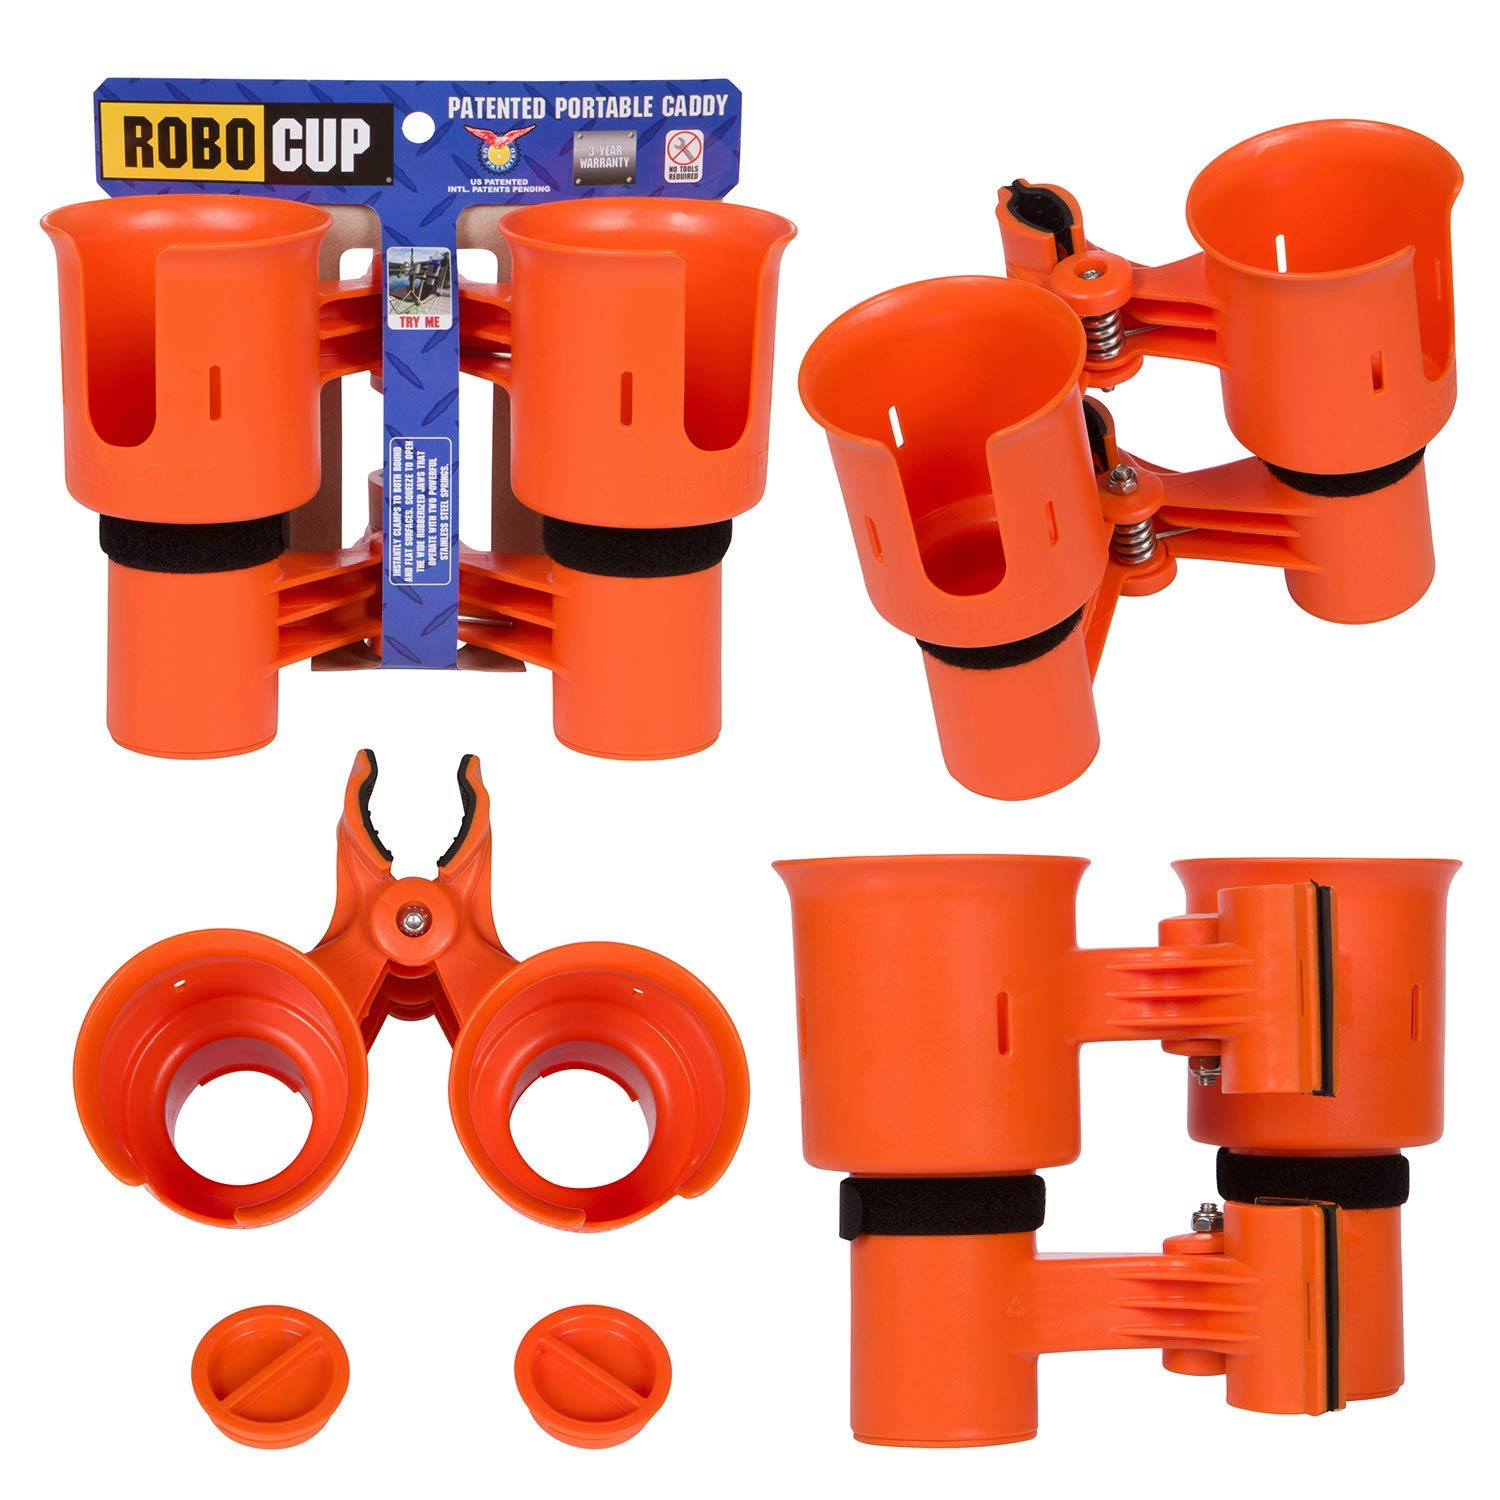 ROBOCUP, Orange, Updated Version, Best Cup Holder for Drinks, Fishing Rod/Pole, Boat, Beach Chair/Golf Cart/Wheelchair/Walker by ROBOCUP